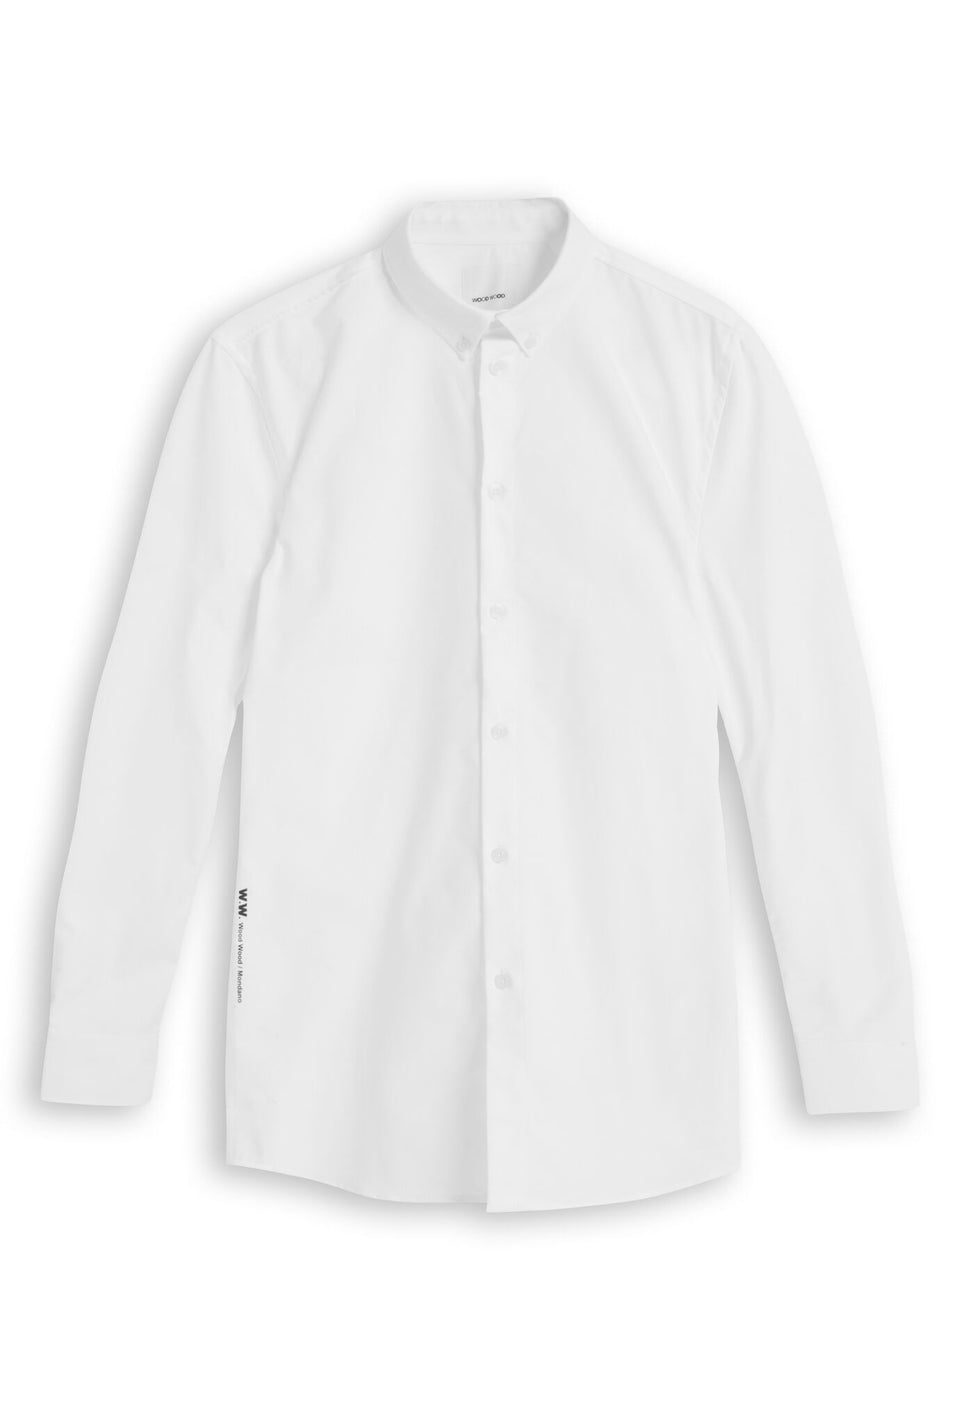 Timothy Shirt Bright White Shirt Wood Wood - der ZEITGEIST